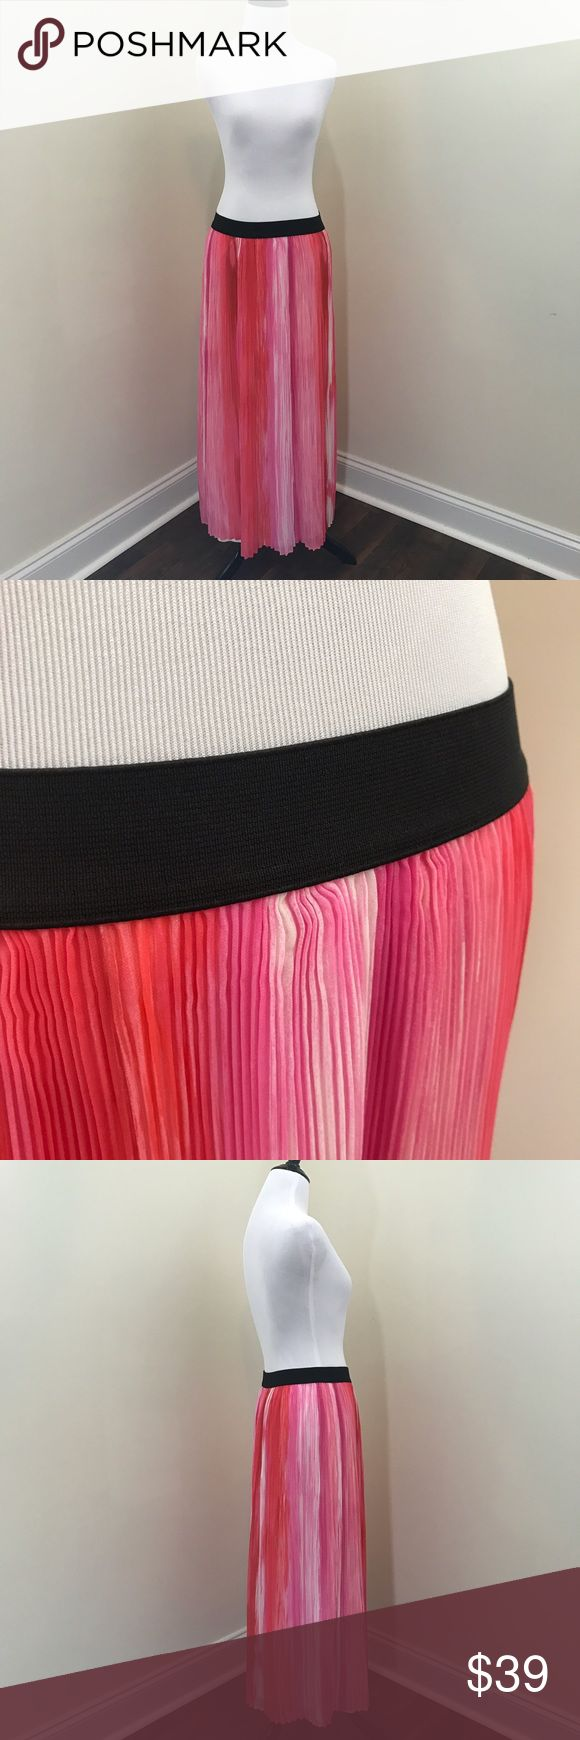 """Pleated Chiffon Maxi Skirt Gorgeous brand new pleated chiffon flowy maxi skirt. In a mix of pinks and whites with a black elastic waistband. Two sizes available!!   Length 35"""" (M L)  Waist Laying Flat 13"""" (M) 15.5"""" (L)  Item Number: L1N3BA L1N4BA NY Collection Skirts Maxi"""